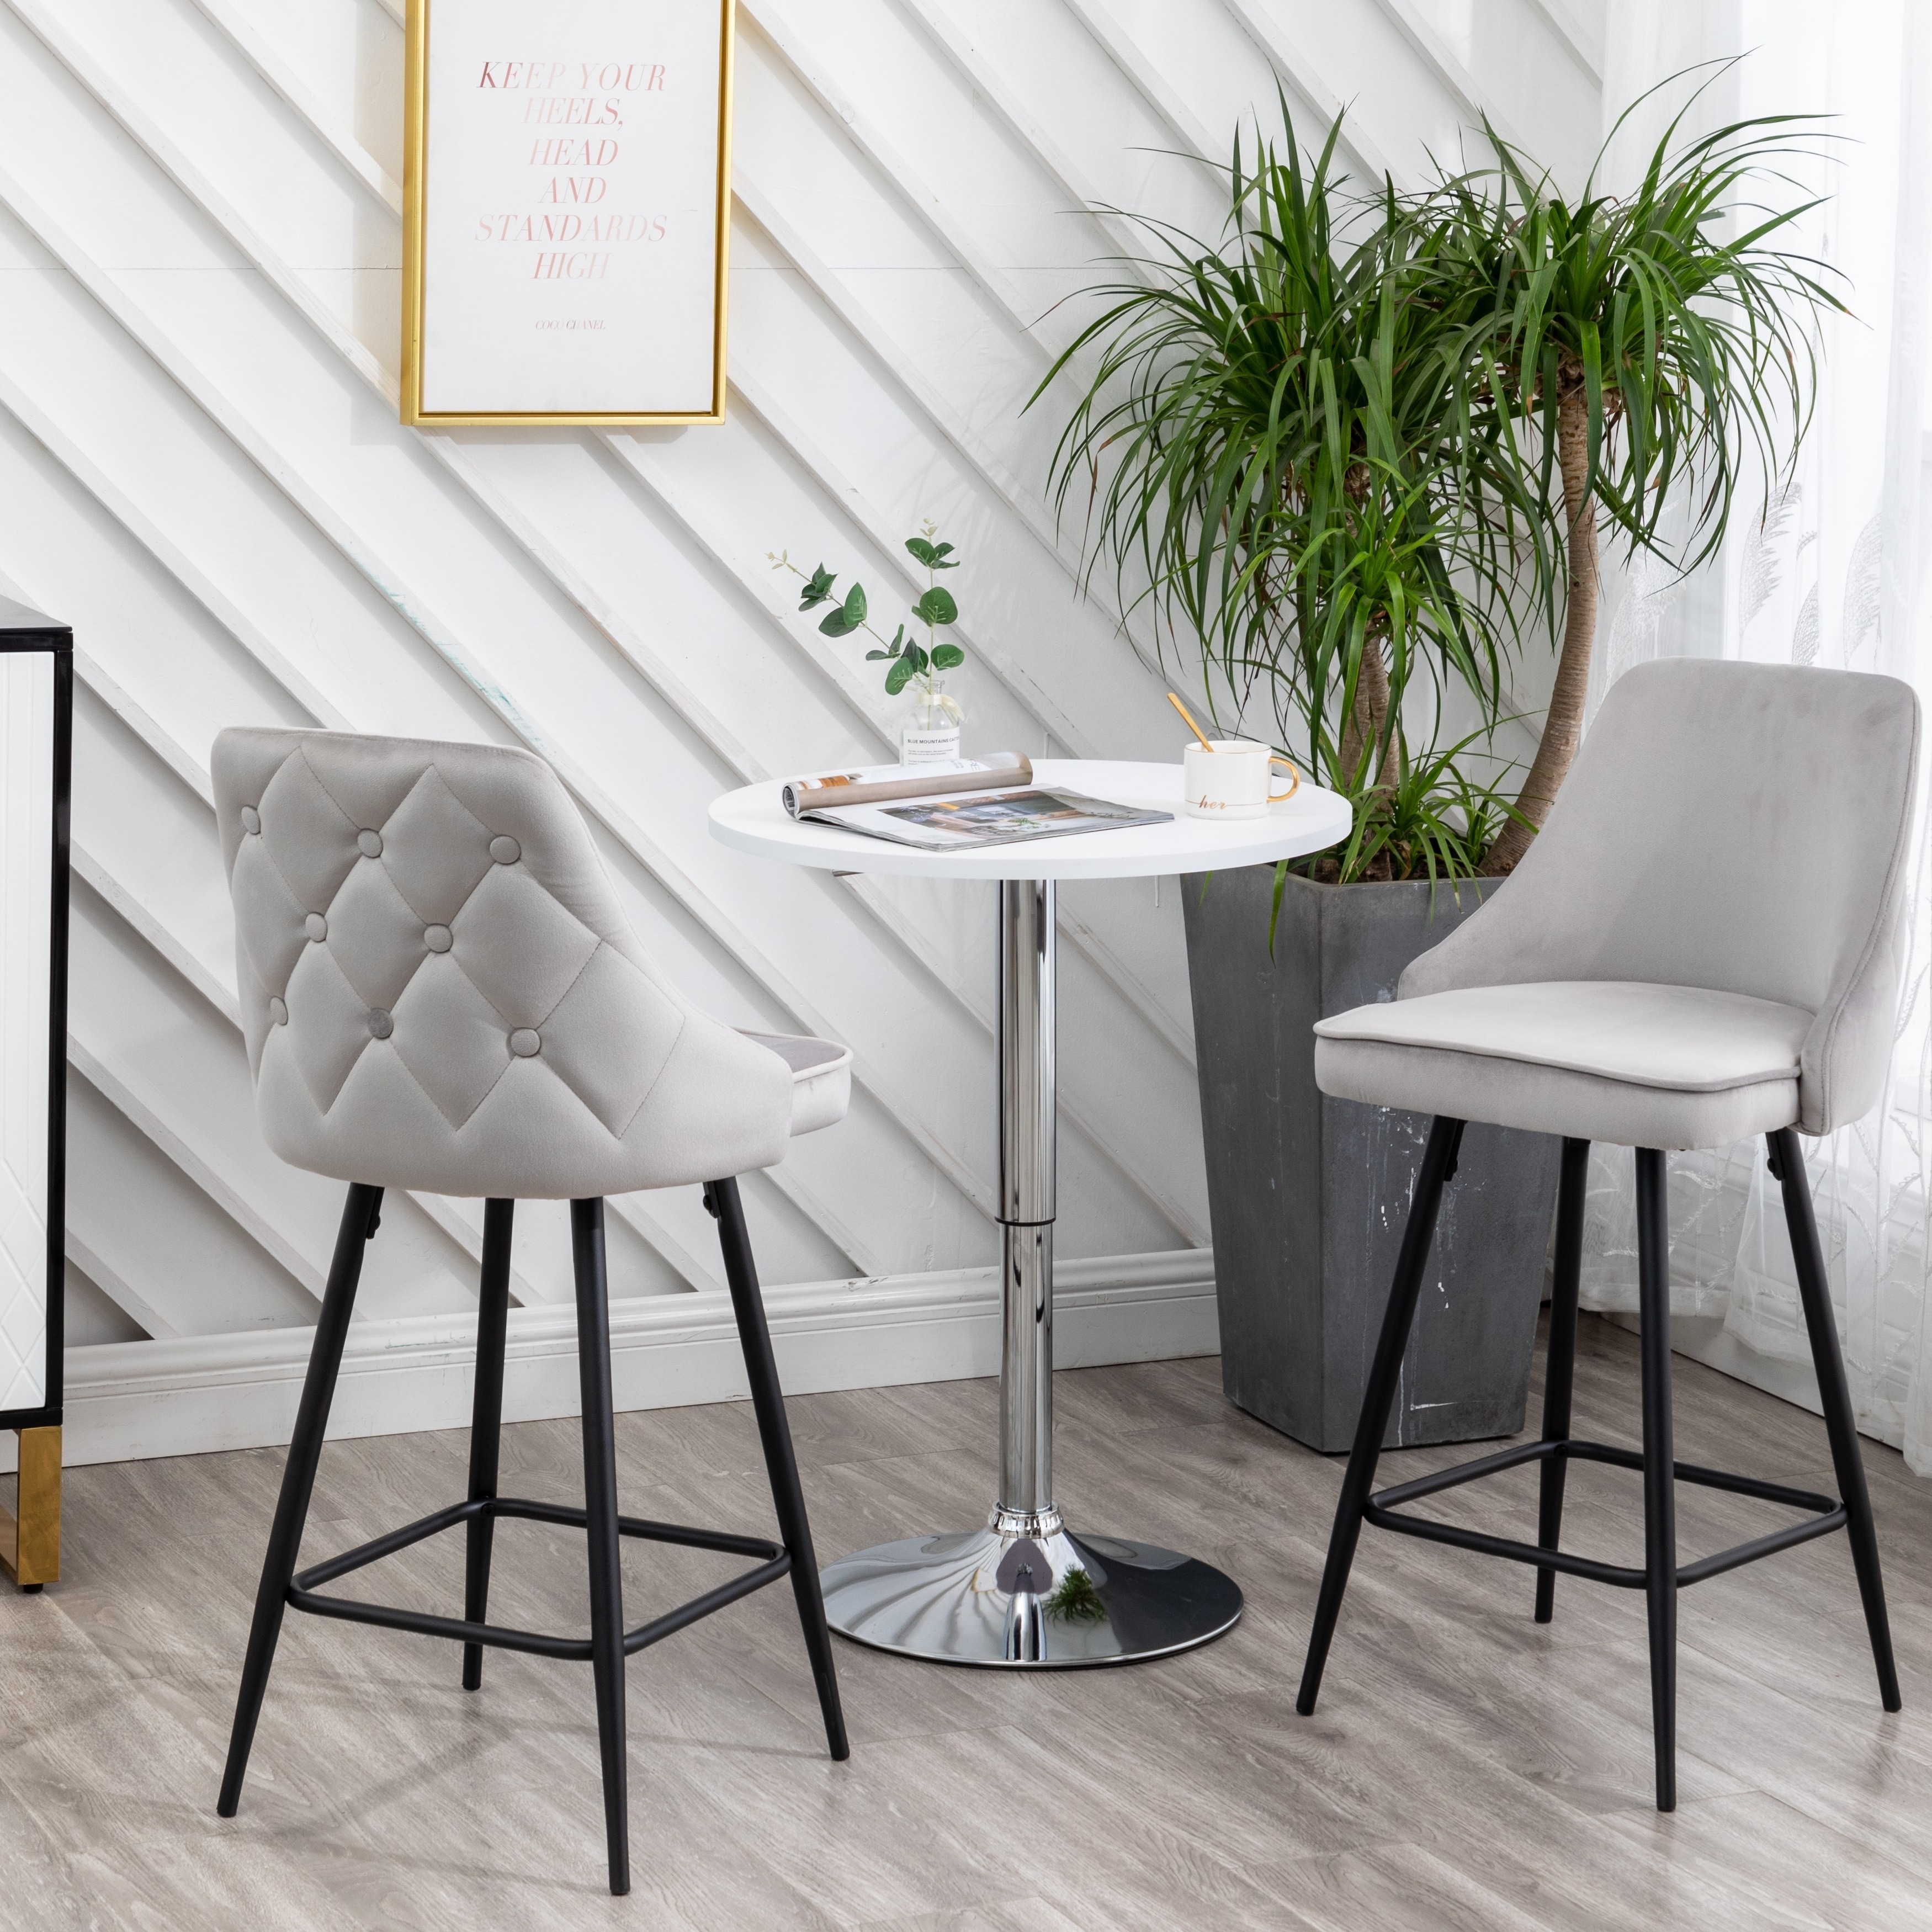 Zahra Premium Tufted Upholstered Dining Bar Stool Set Of 2 On Sale Overstock 31568917